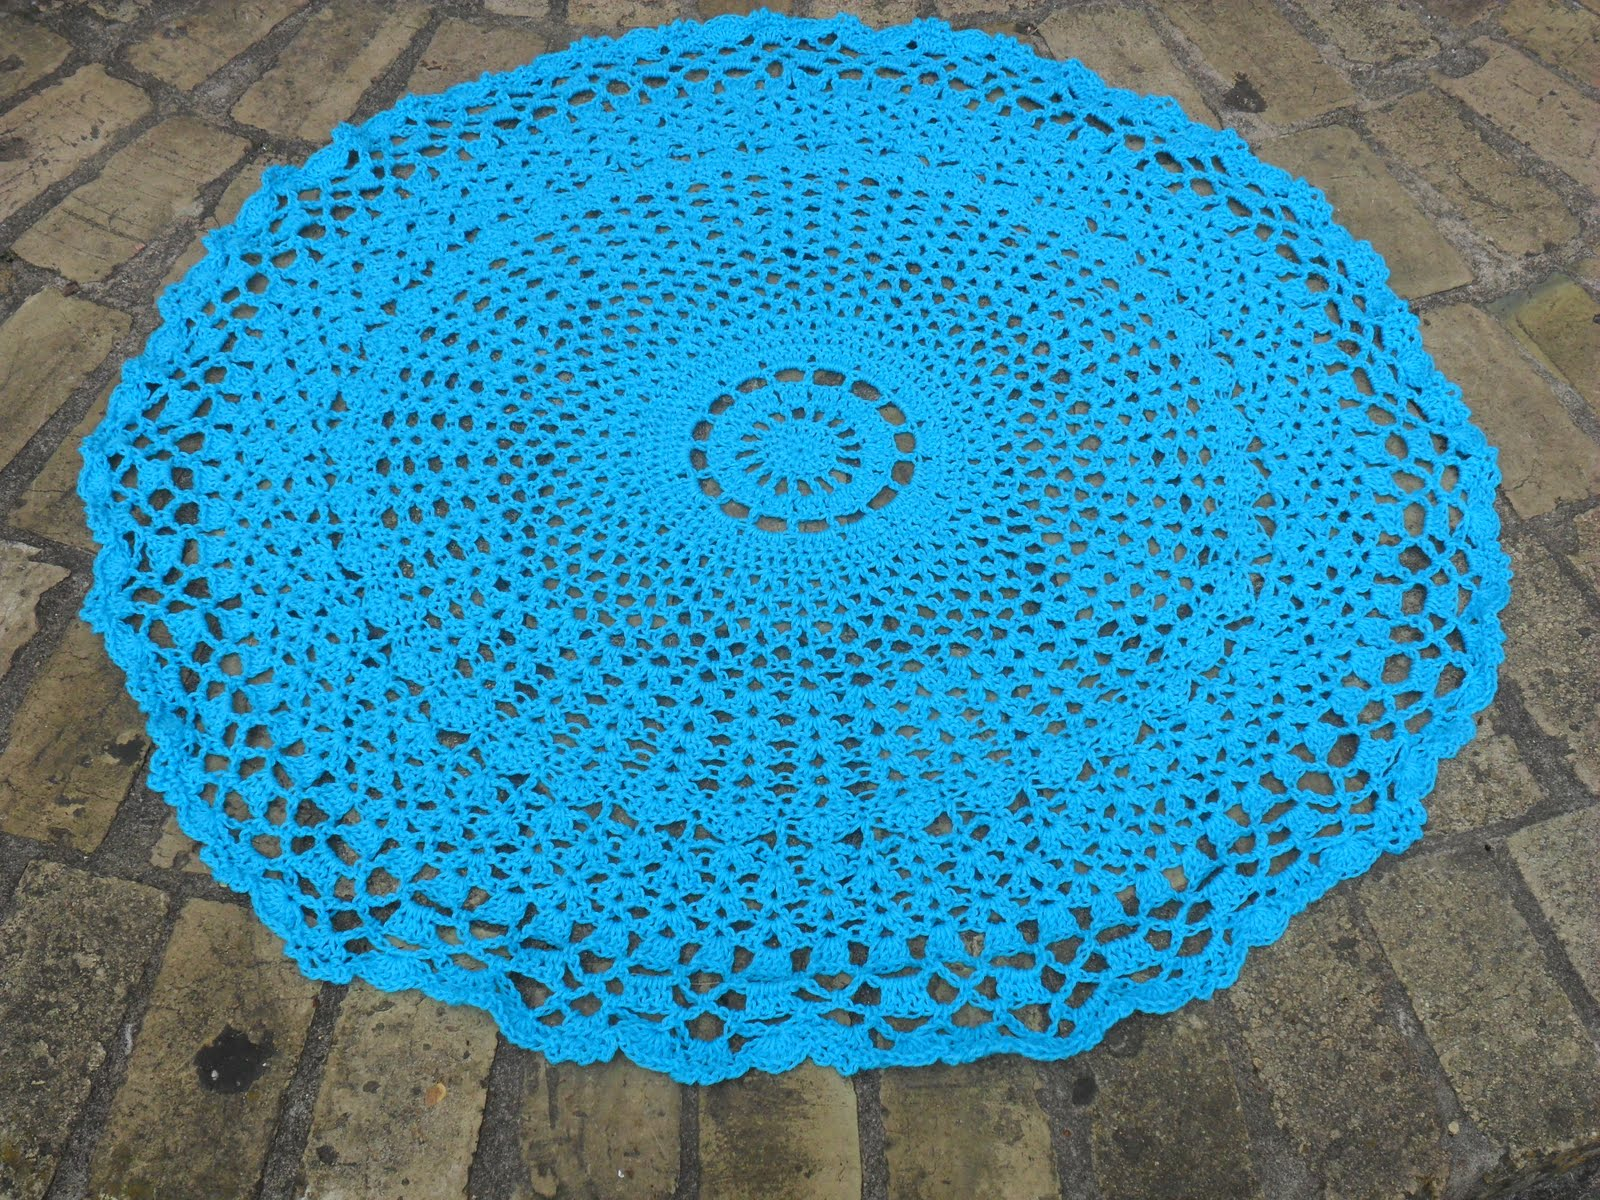 Valis Crochet Moment: New Pattern for Valis Circular ...